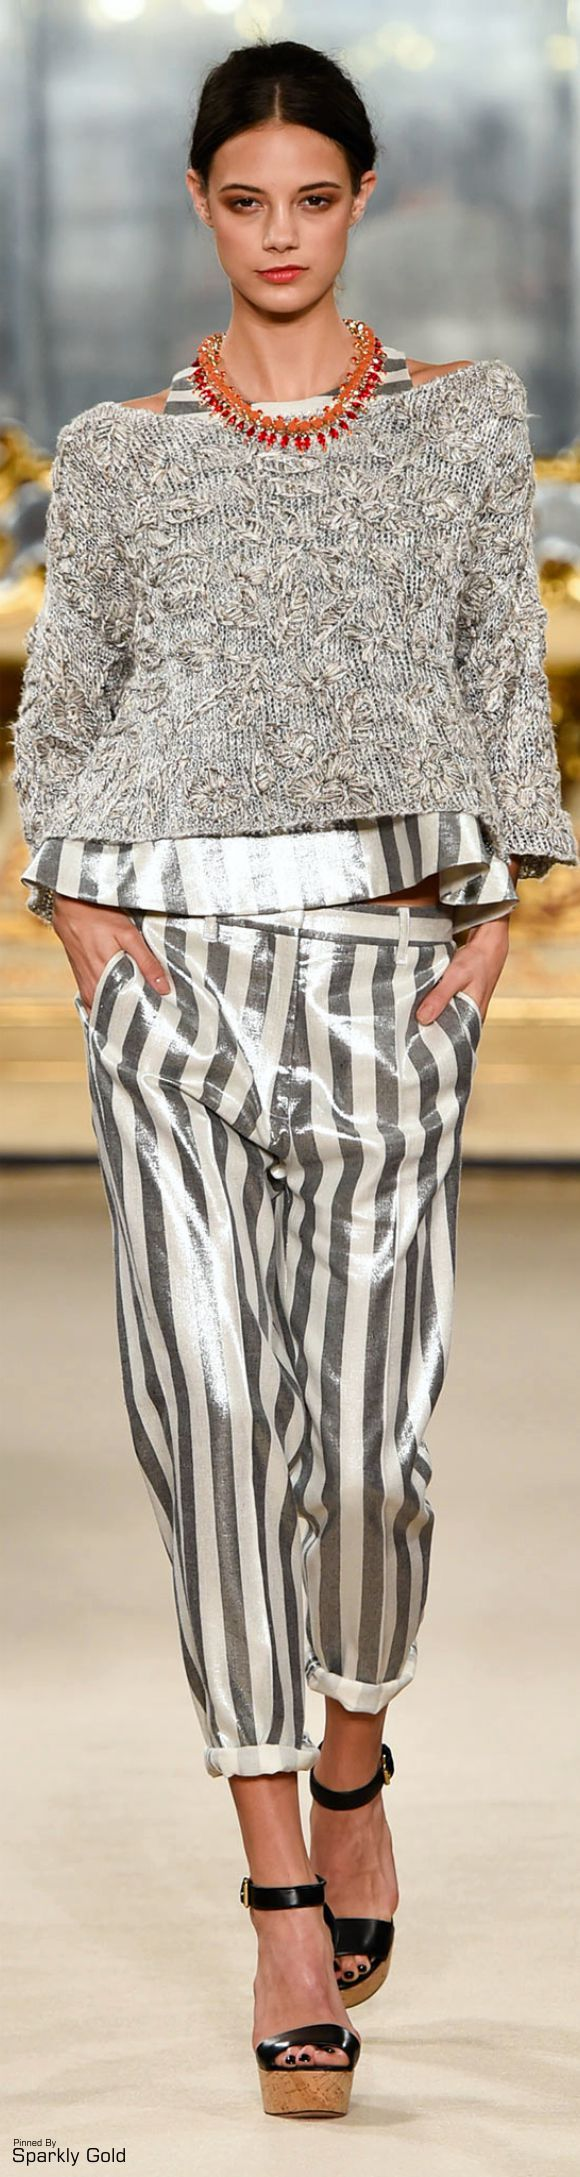 Les Copains ~ Spring Grey + White Vertical Strip Pant w Sweater 2015